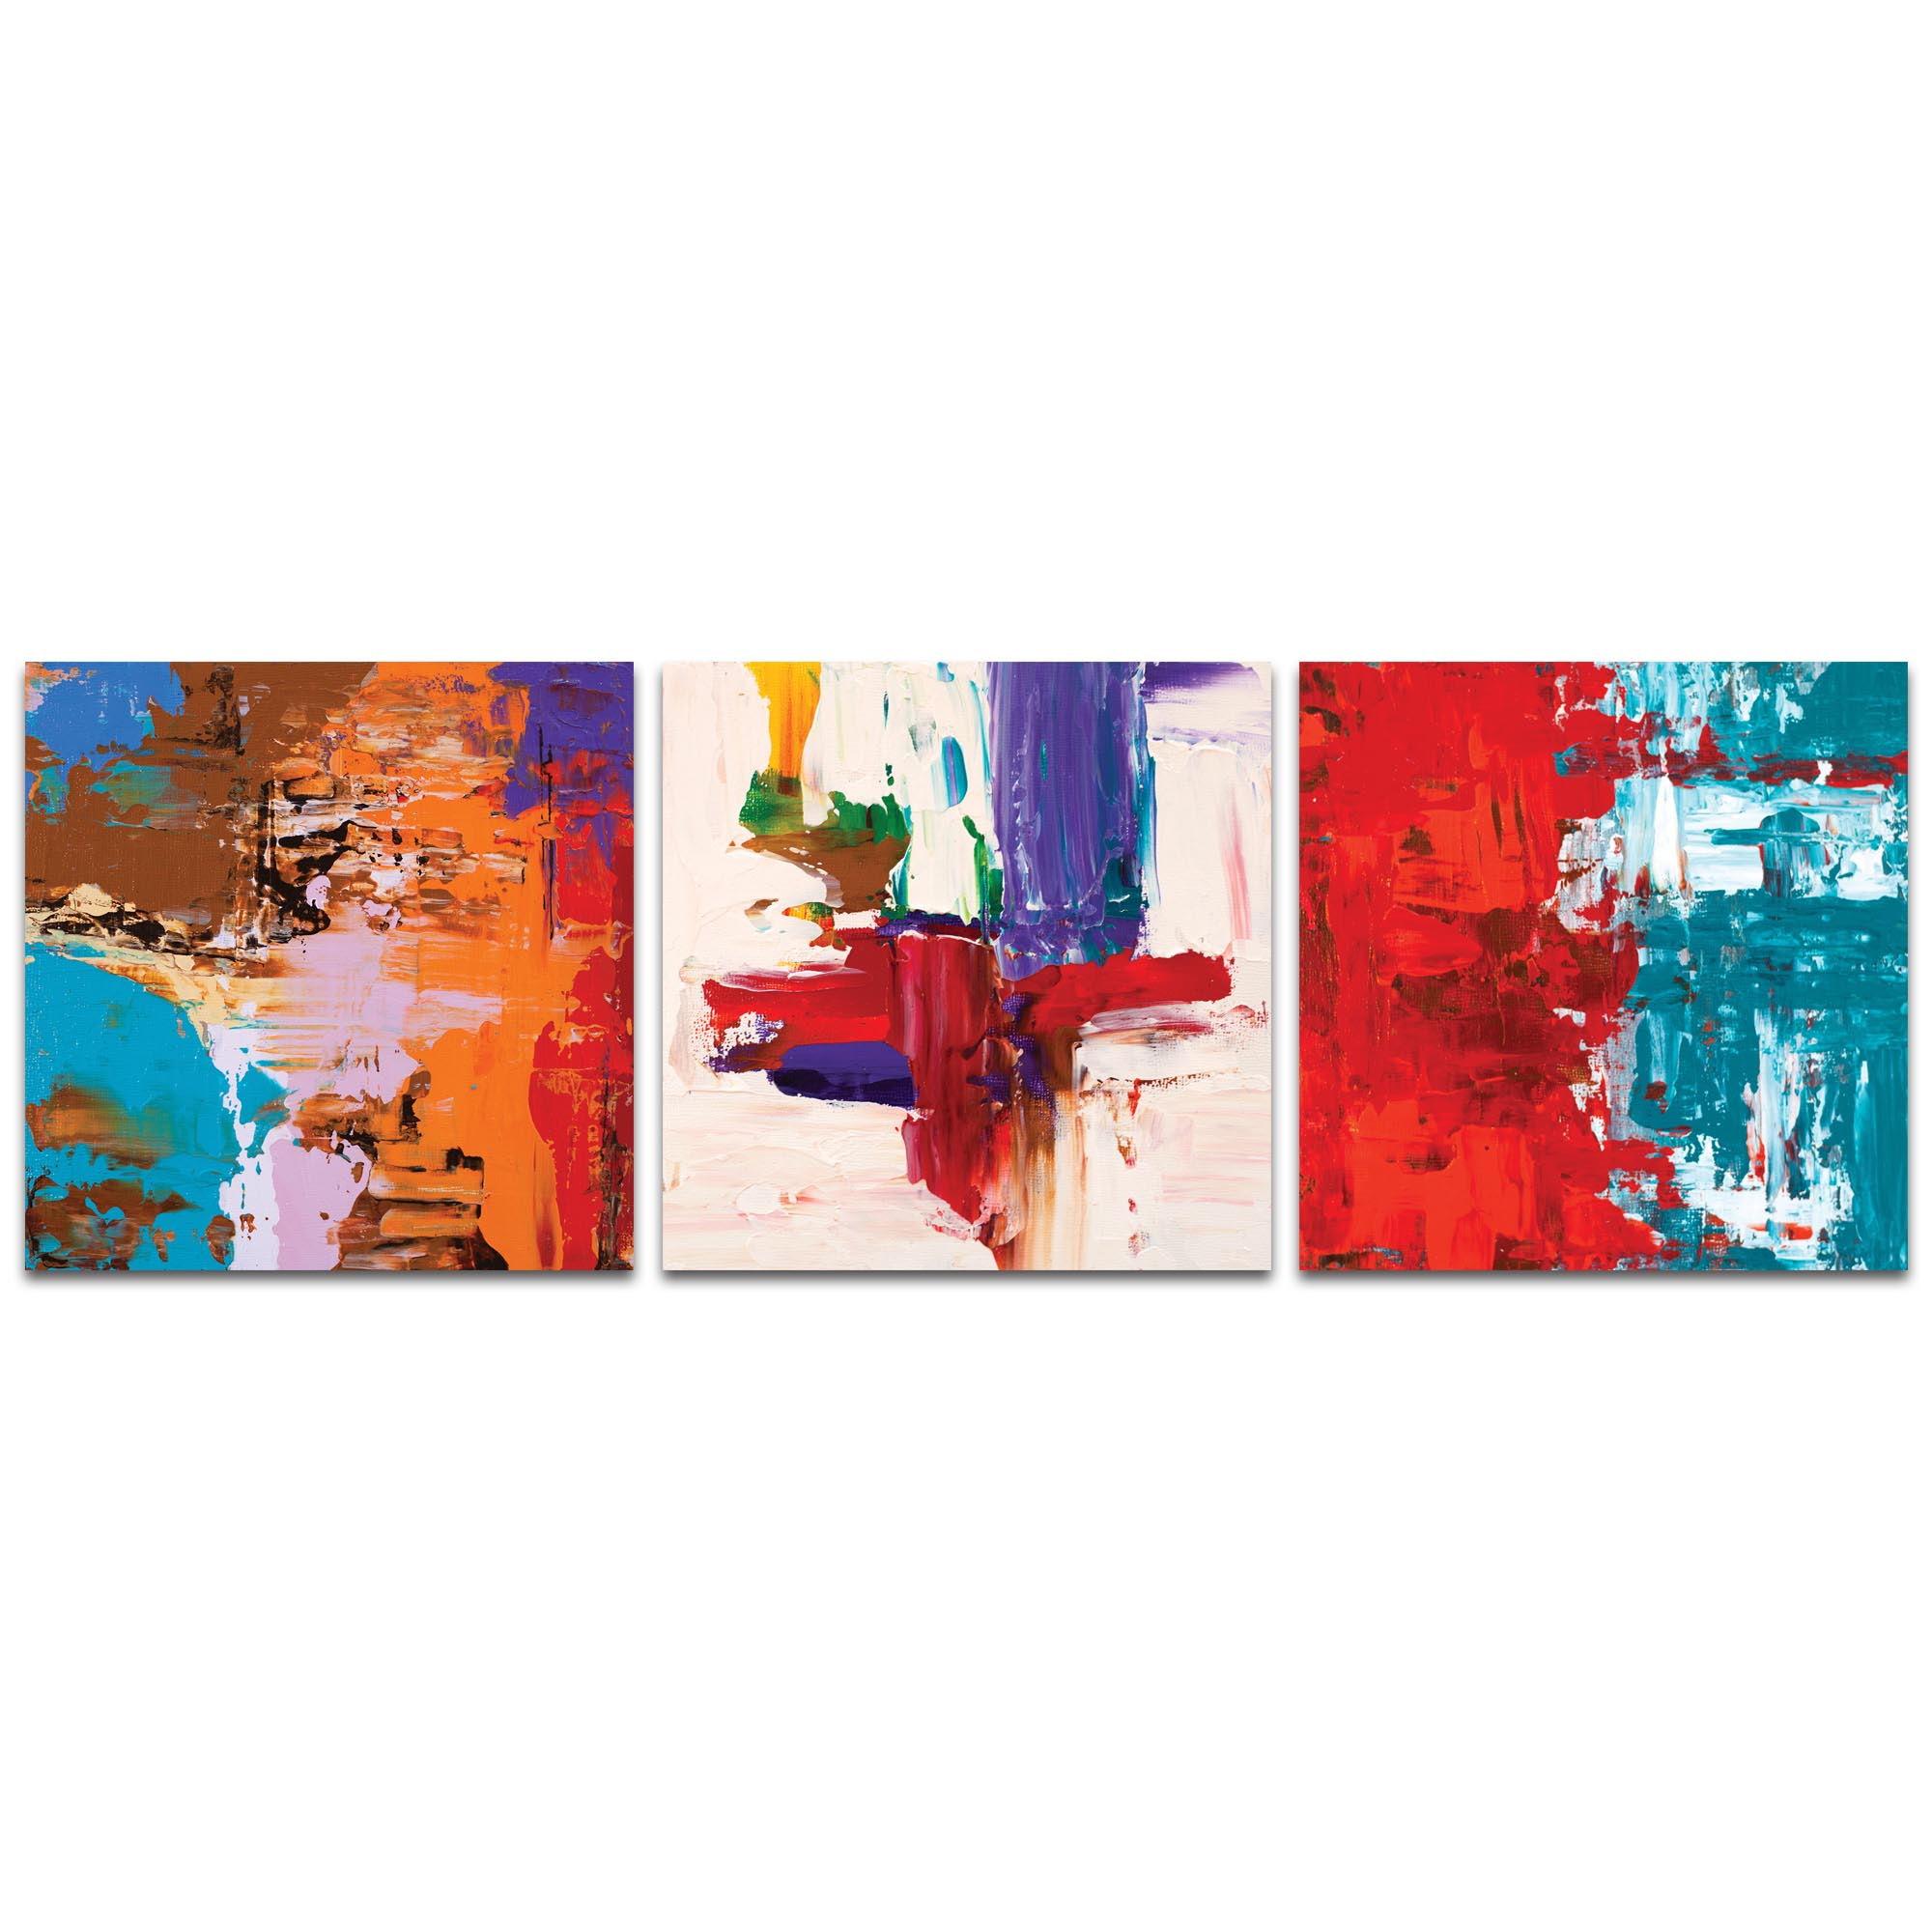 Abstract Wall Art 'Urban Triptych 5' - Urban Decor on Metal or Plexiglass